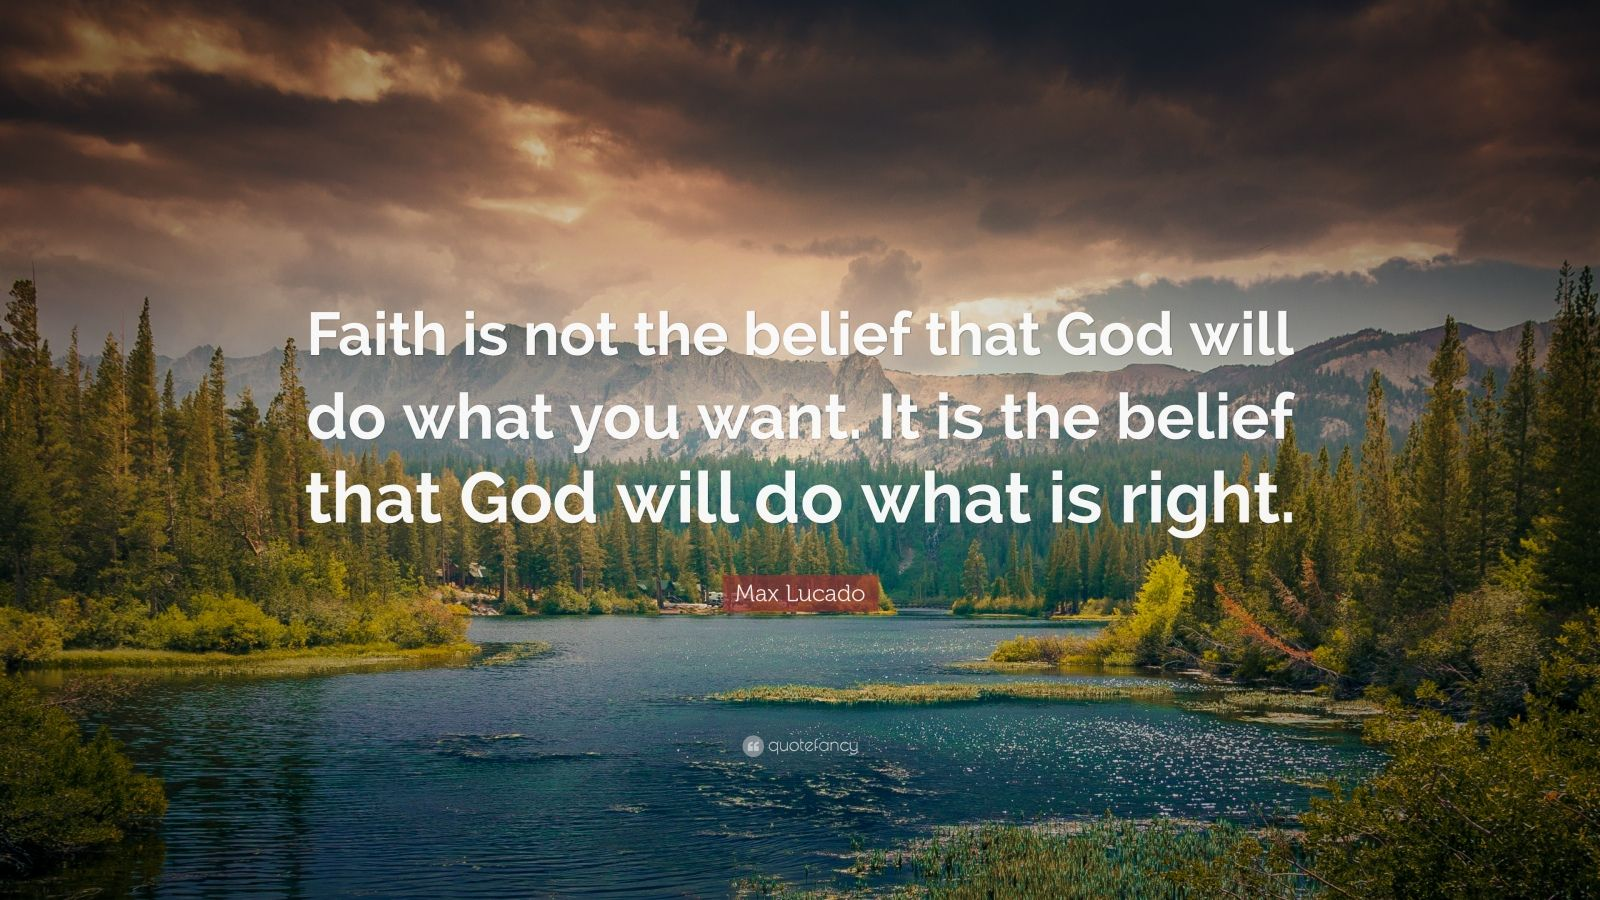 "Faith Quotes: ""Faith is not the belief that God will do what you want. It is the belief that God will do what is right."" — Max Lucado"